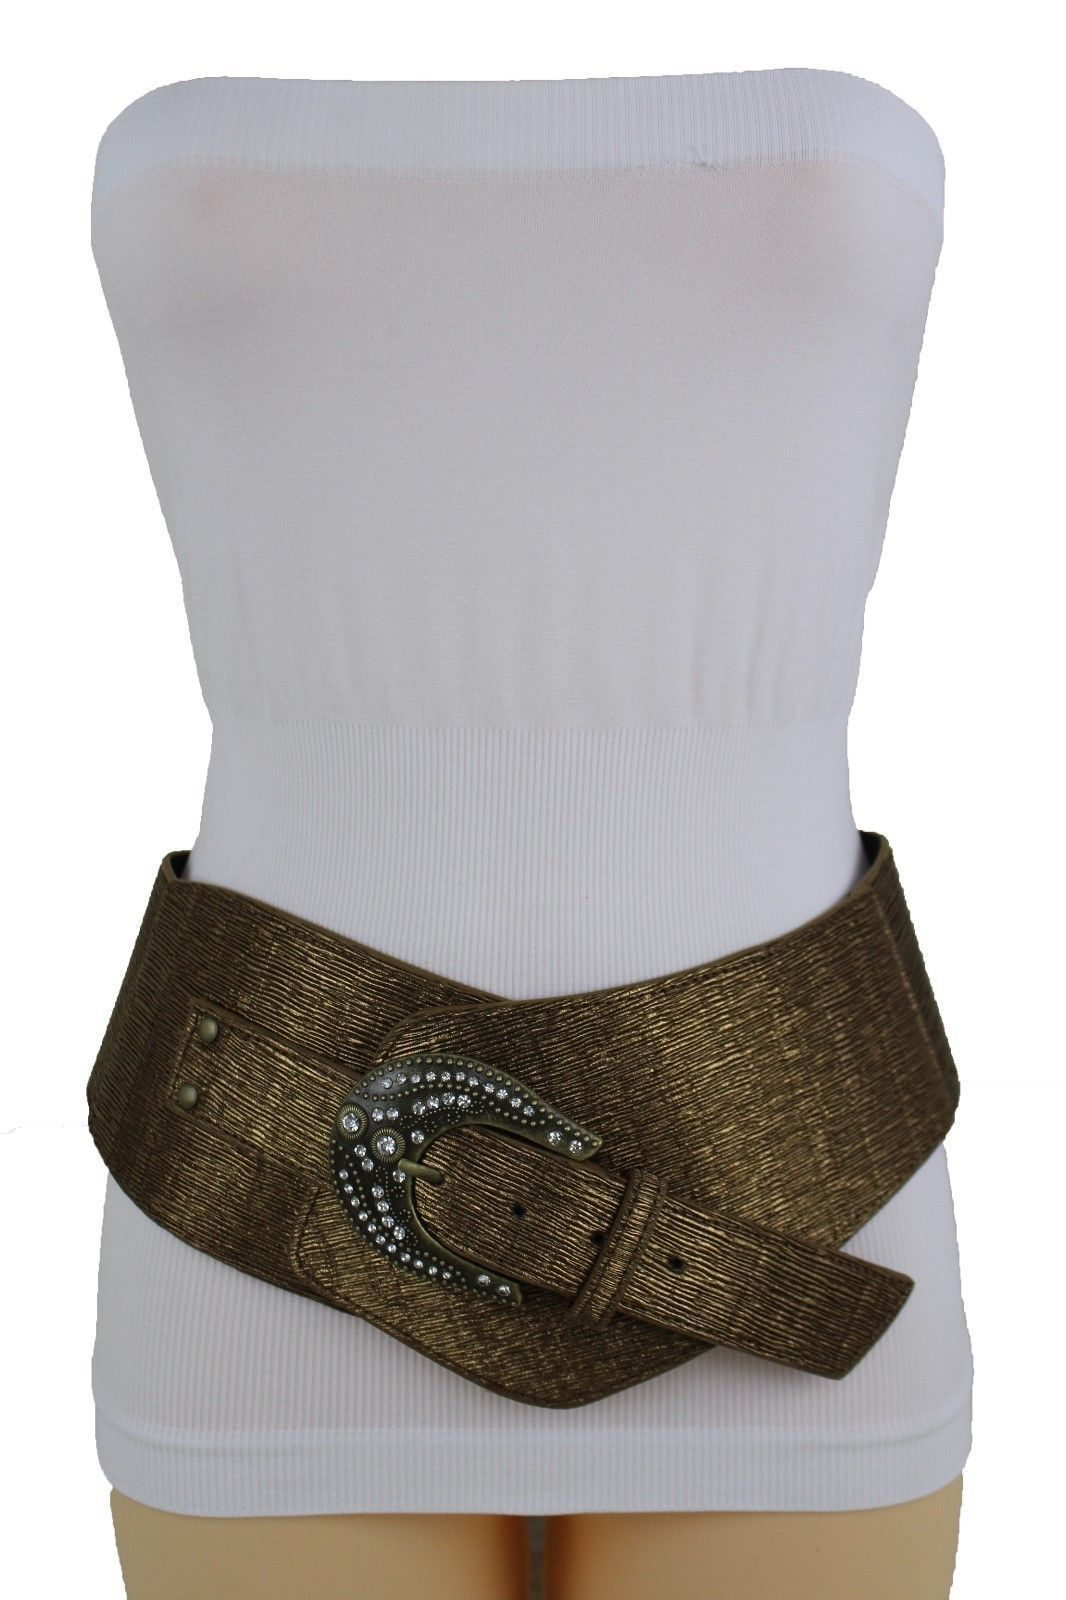 654fd84df481 Trendy, Fashion, Classic, Unique, Chic Jewelry Accessory - Metal Stud Extra  Wide Belt There Are 3 Colors 3 Sizes To Choose From You Are Buying One Belt:  ...